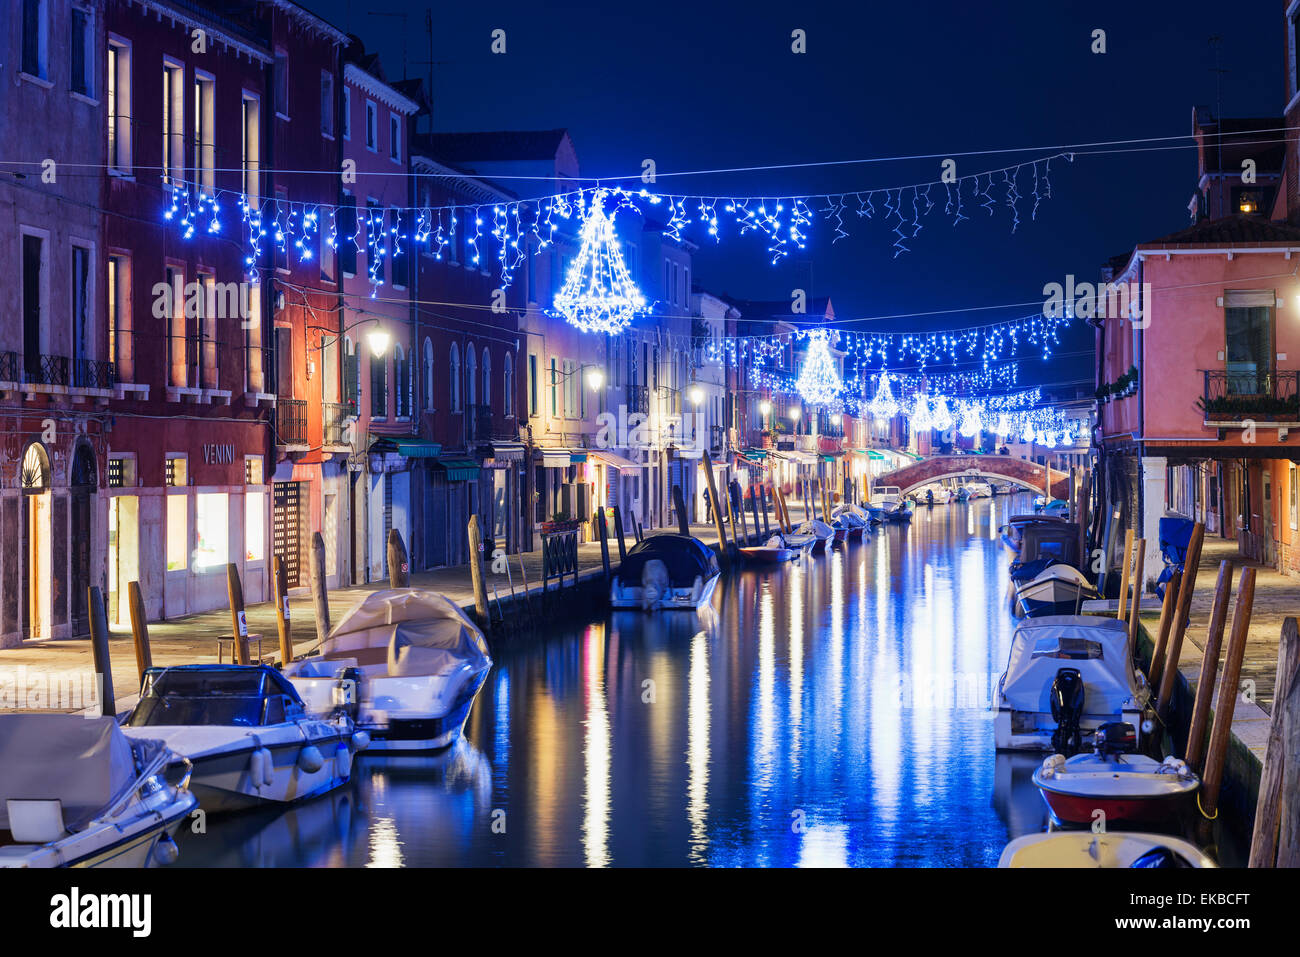 Décoration de Noël sur un canal de nuit, Murano, Venise, UNESCO World Heritage Site, Vénétie, Photo Stock